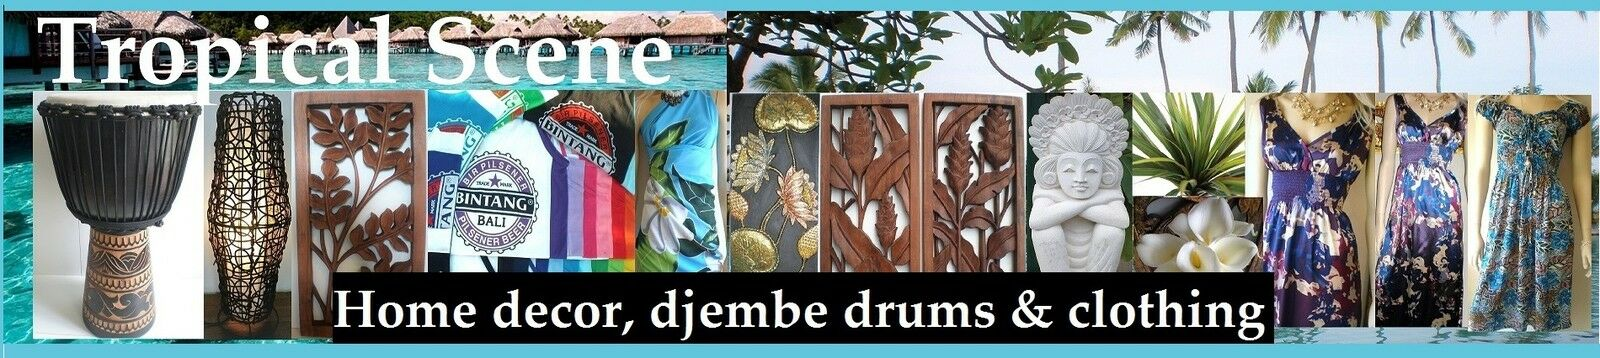 Tropical Scene Home Decor, Djembes